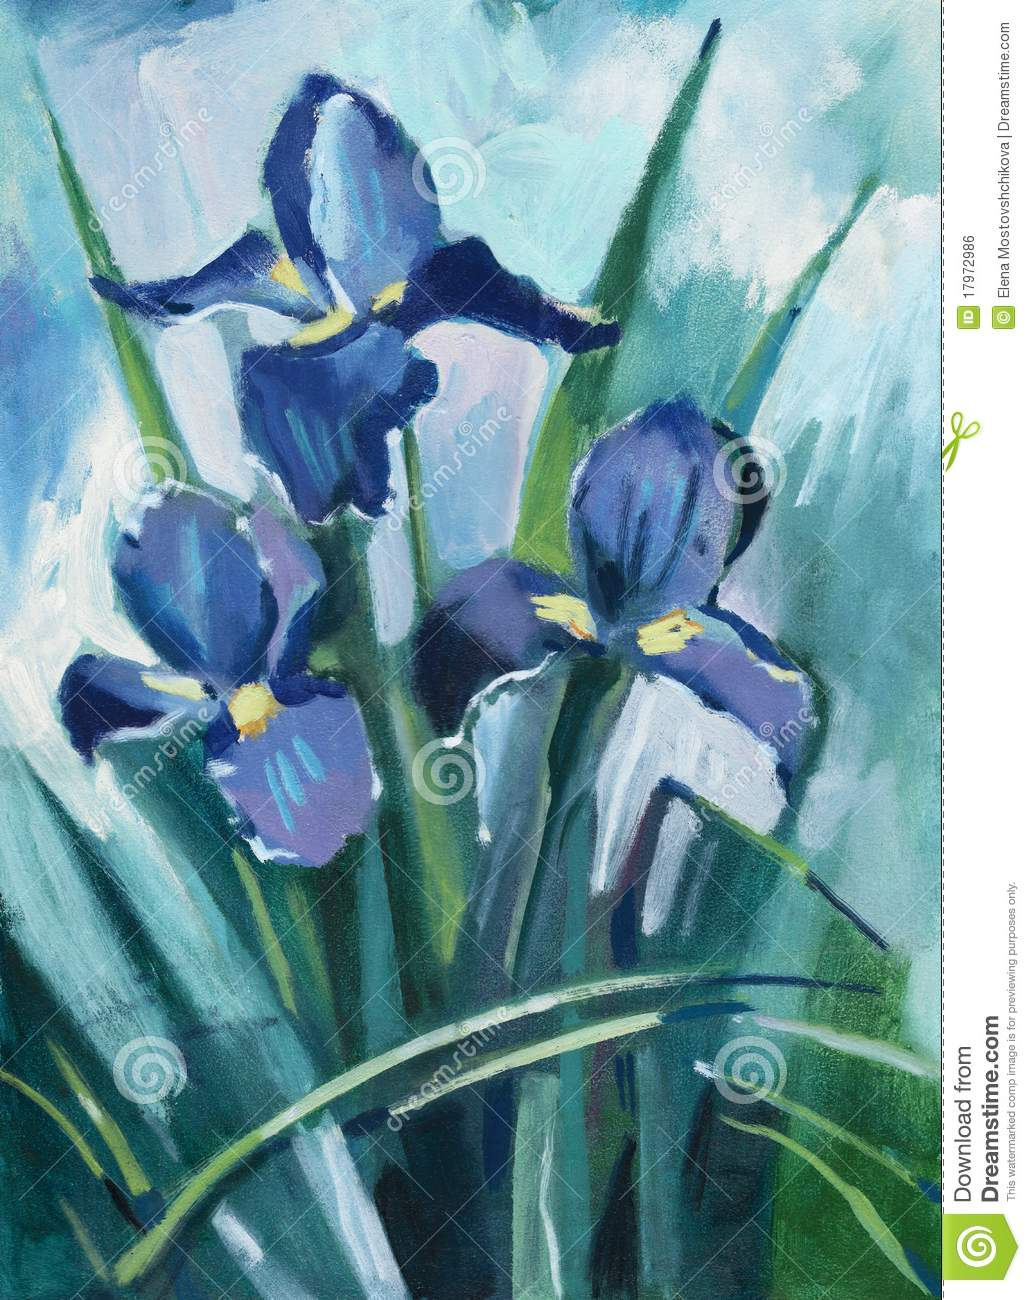 Oil painting iris flowers stock illustration illustration of flower oil painting iris flowers stock illustration illustration of flower 17972986 izmirmasajfo